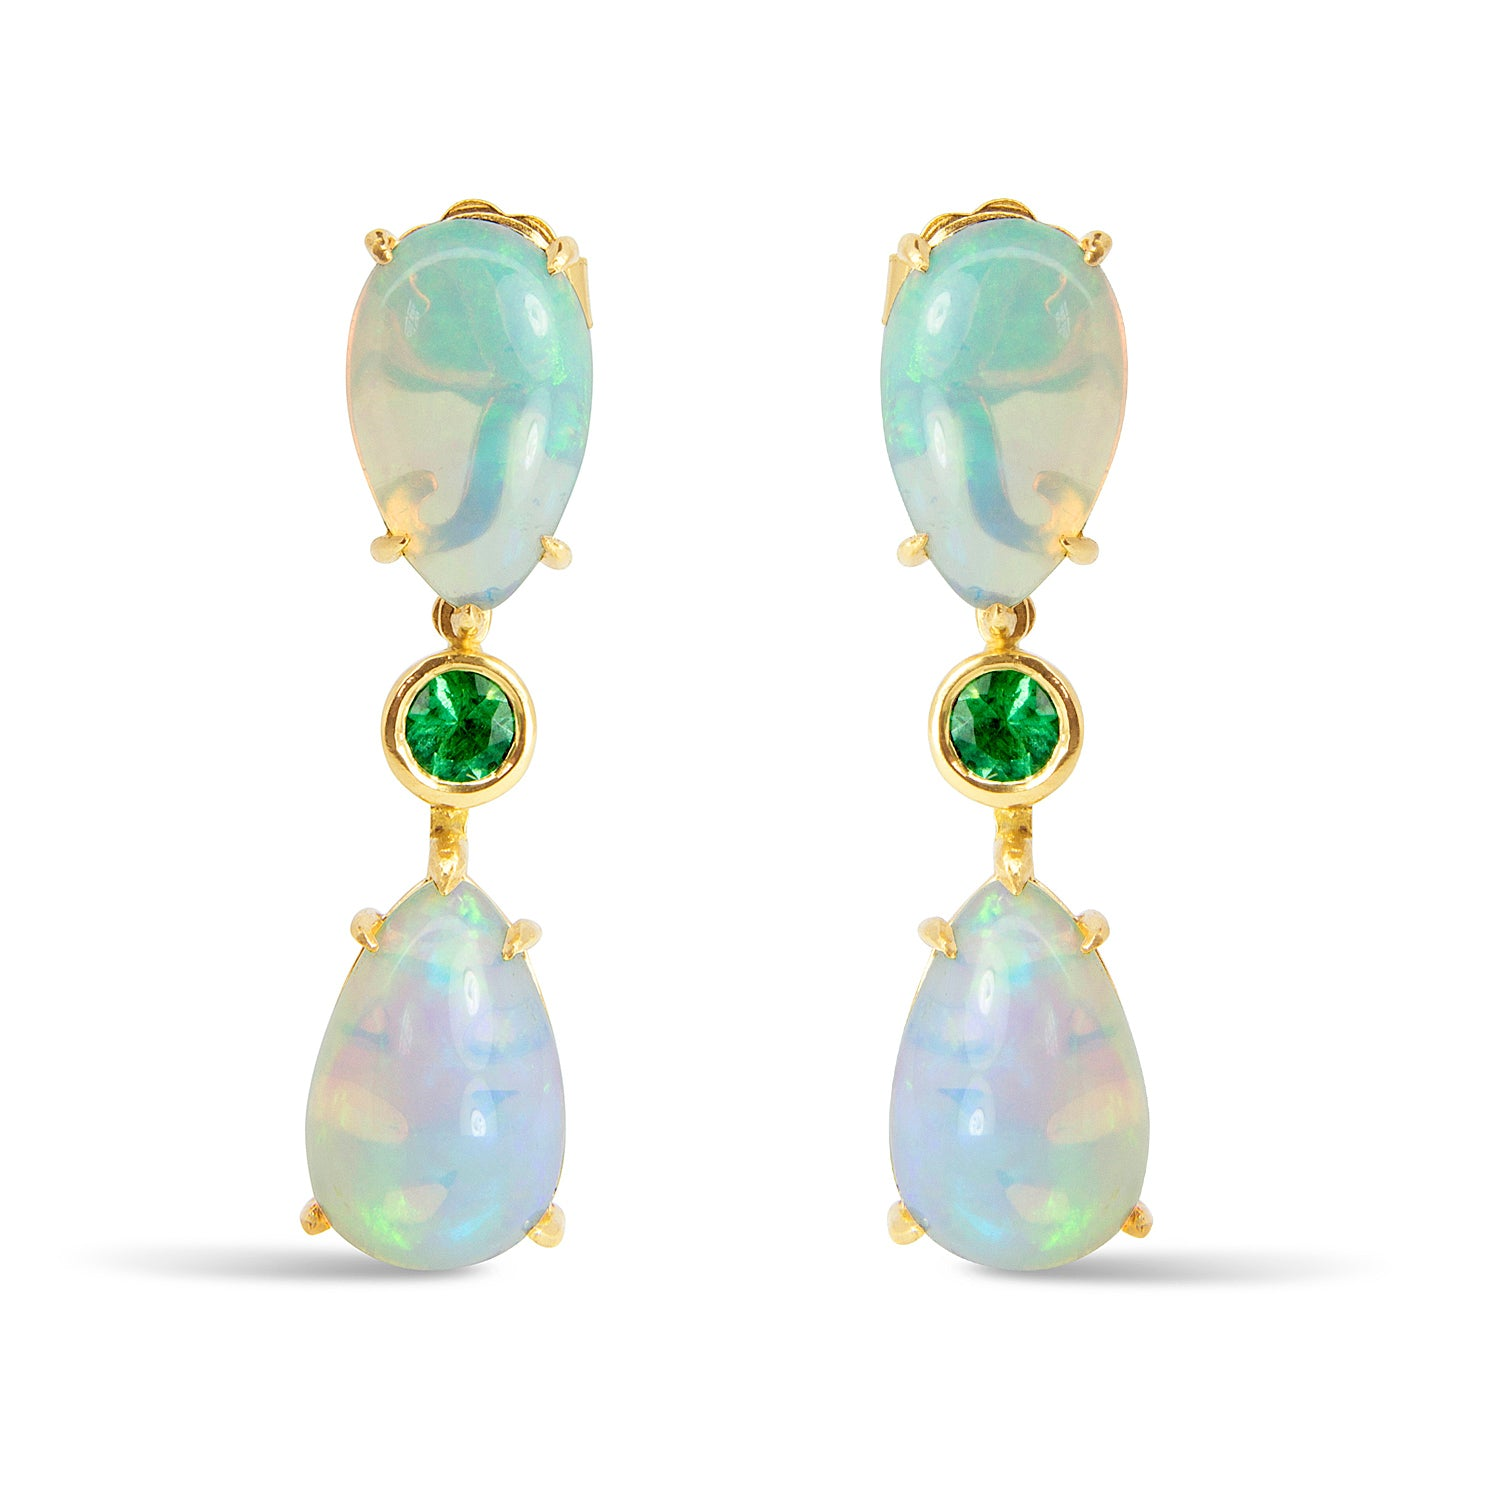 Bespoke Estelle drop earrings - Fairmined Ecological Gold, fair-traded opals and emeralds